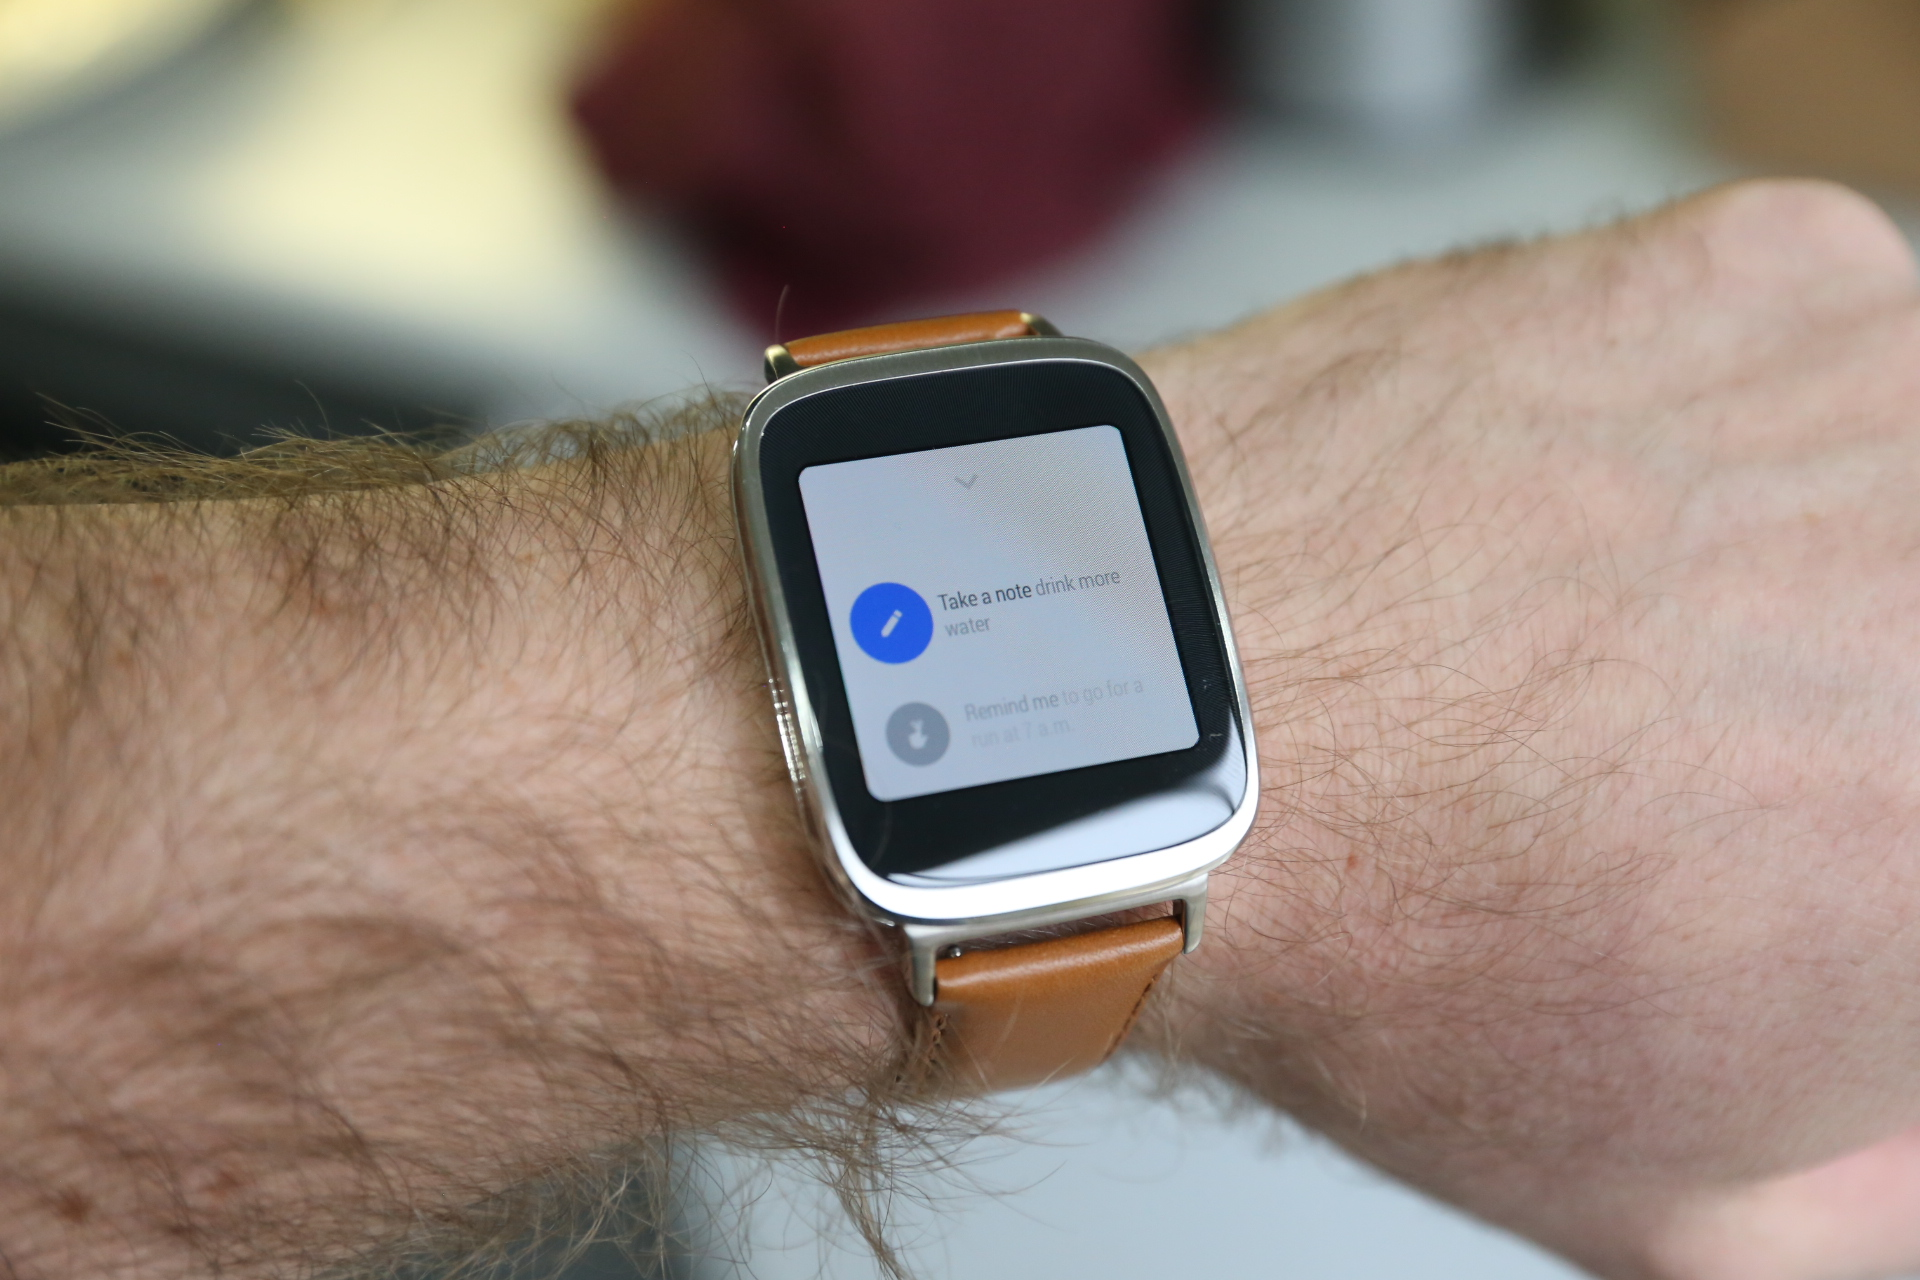 Https 2014 12 15 These Australian Social Media Switchmate39 Lets You Run Light Switch From Your Phone Without Rewiring Asus Zenwatch 3